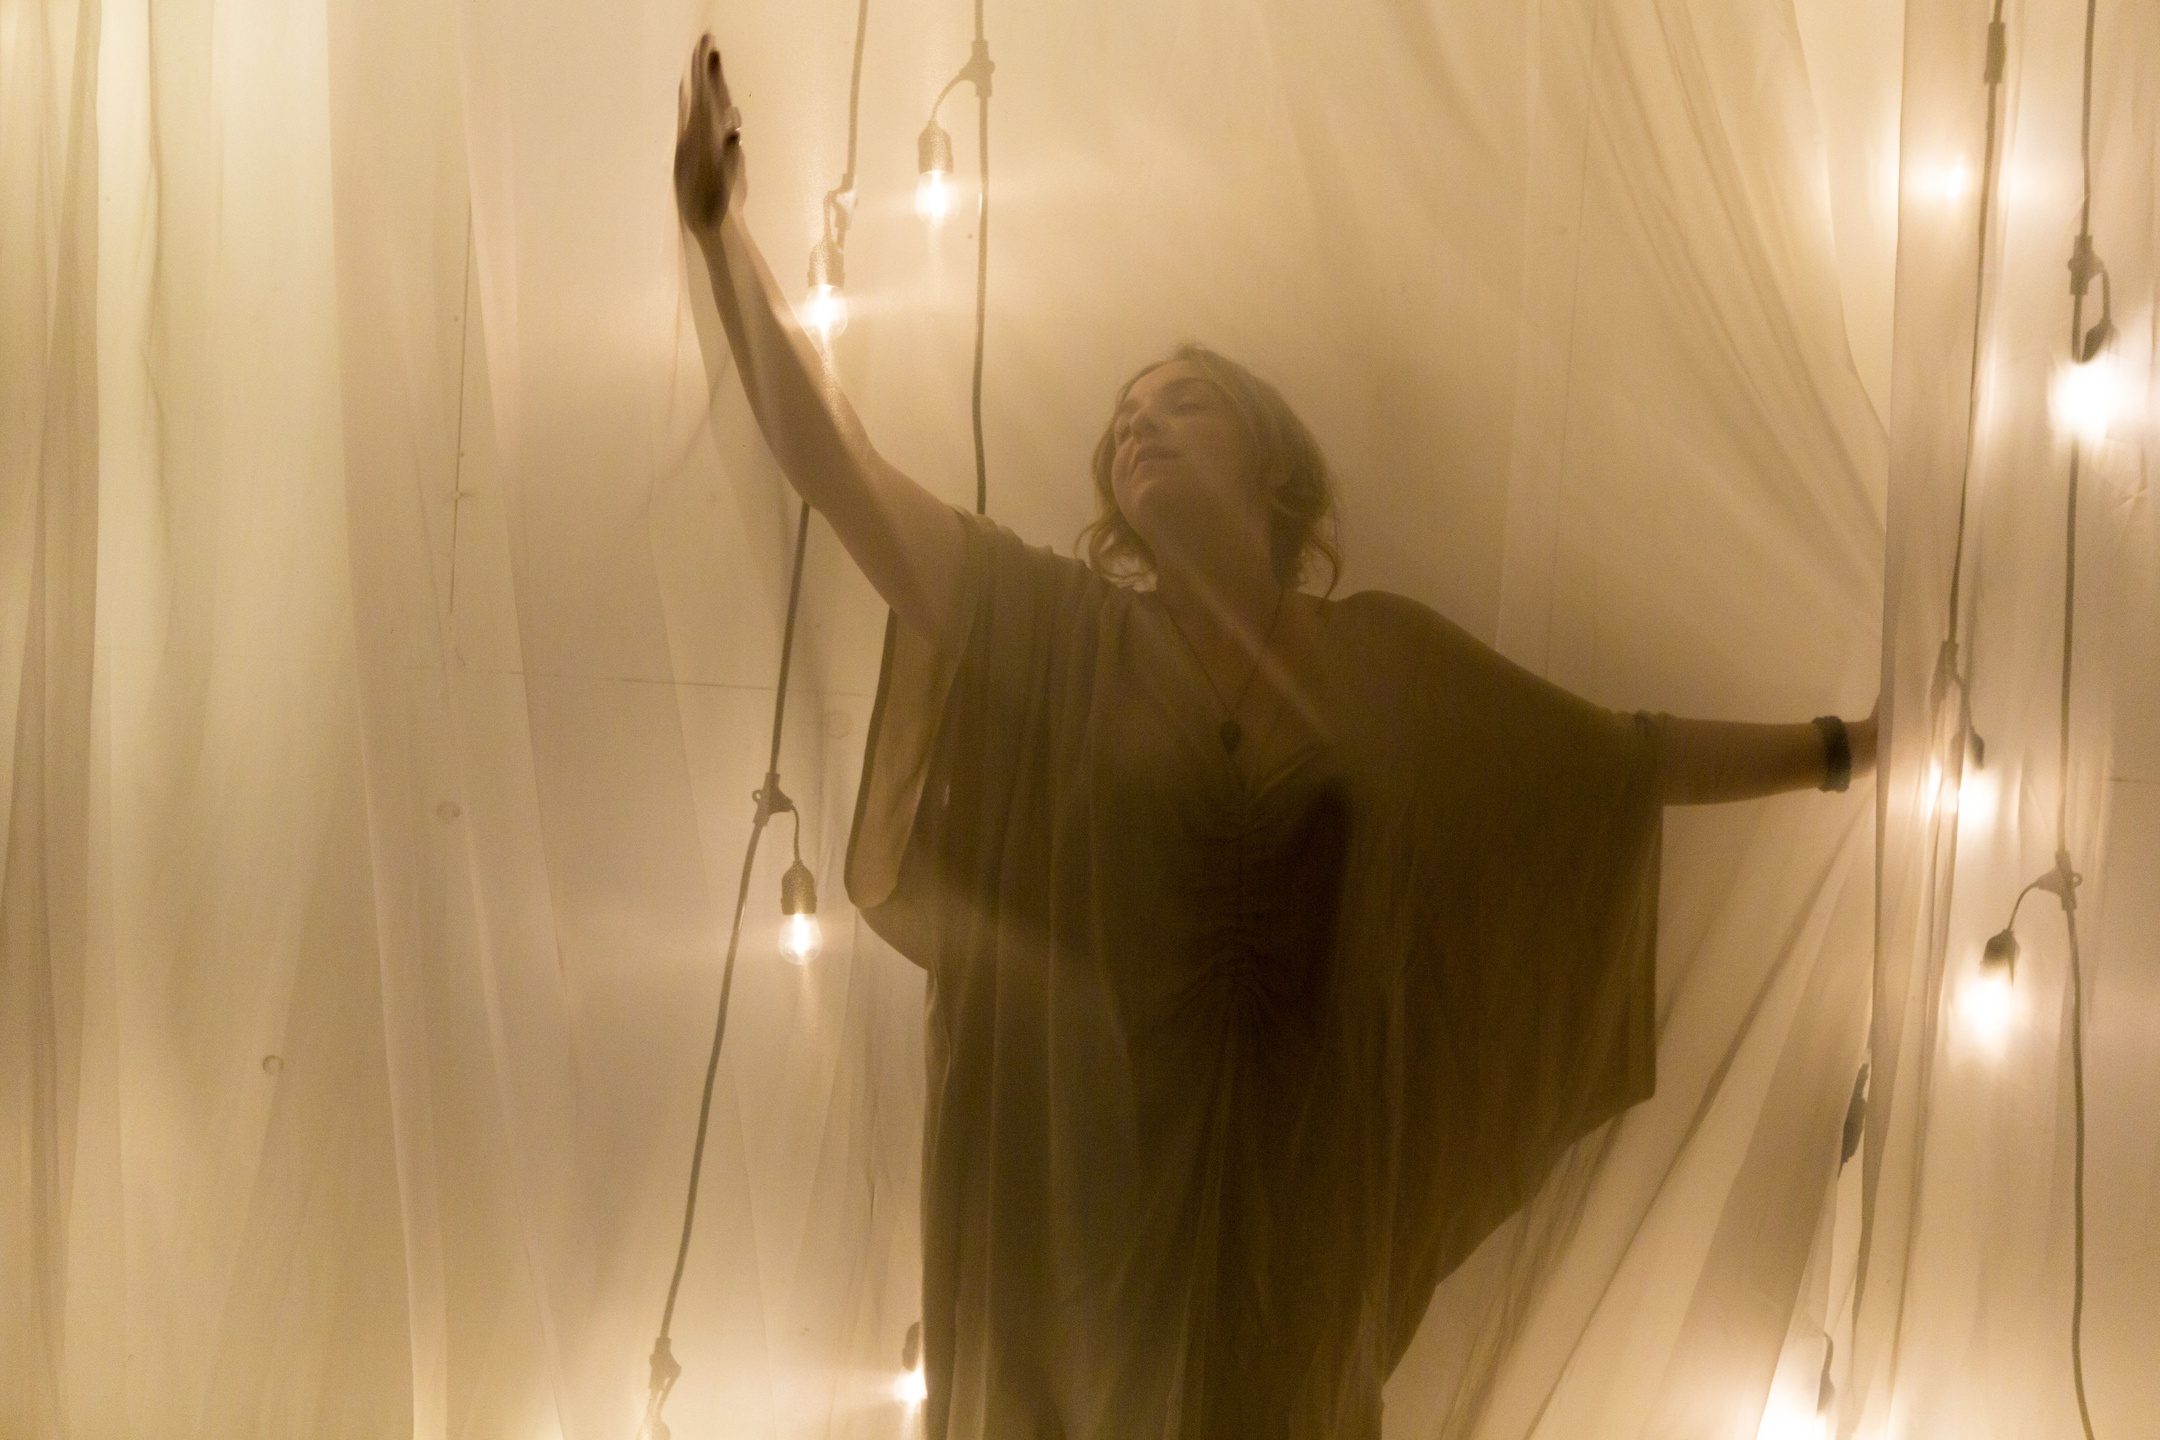 image shows woman with arms stretched behind sheer fabric with twinkle lights